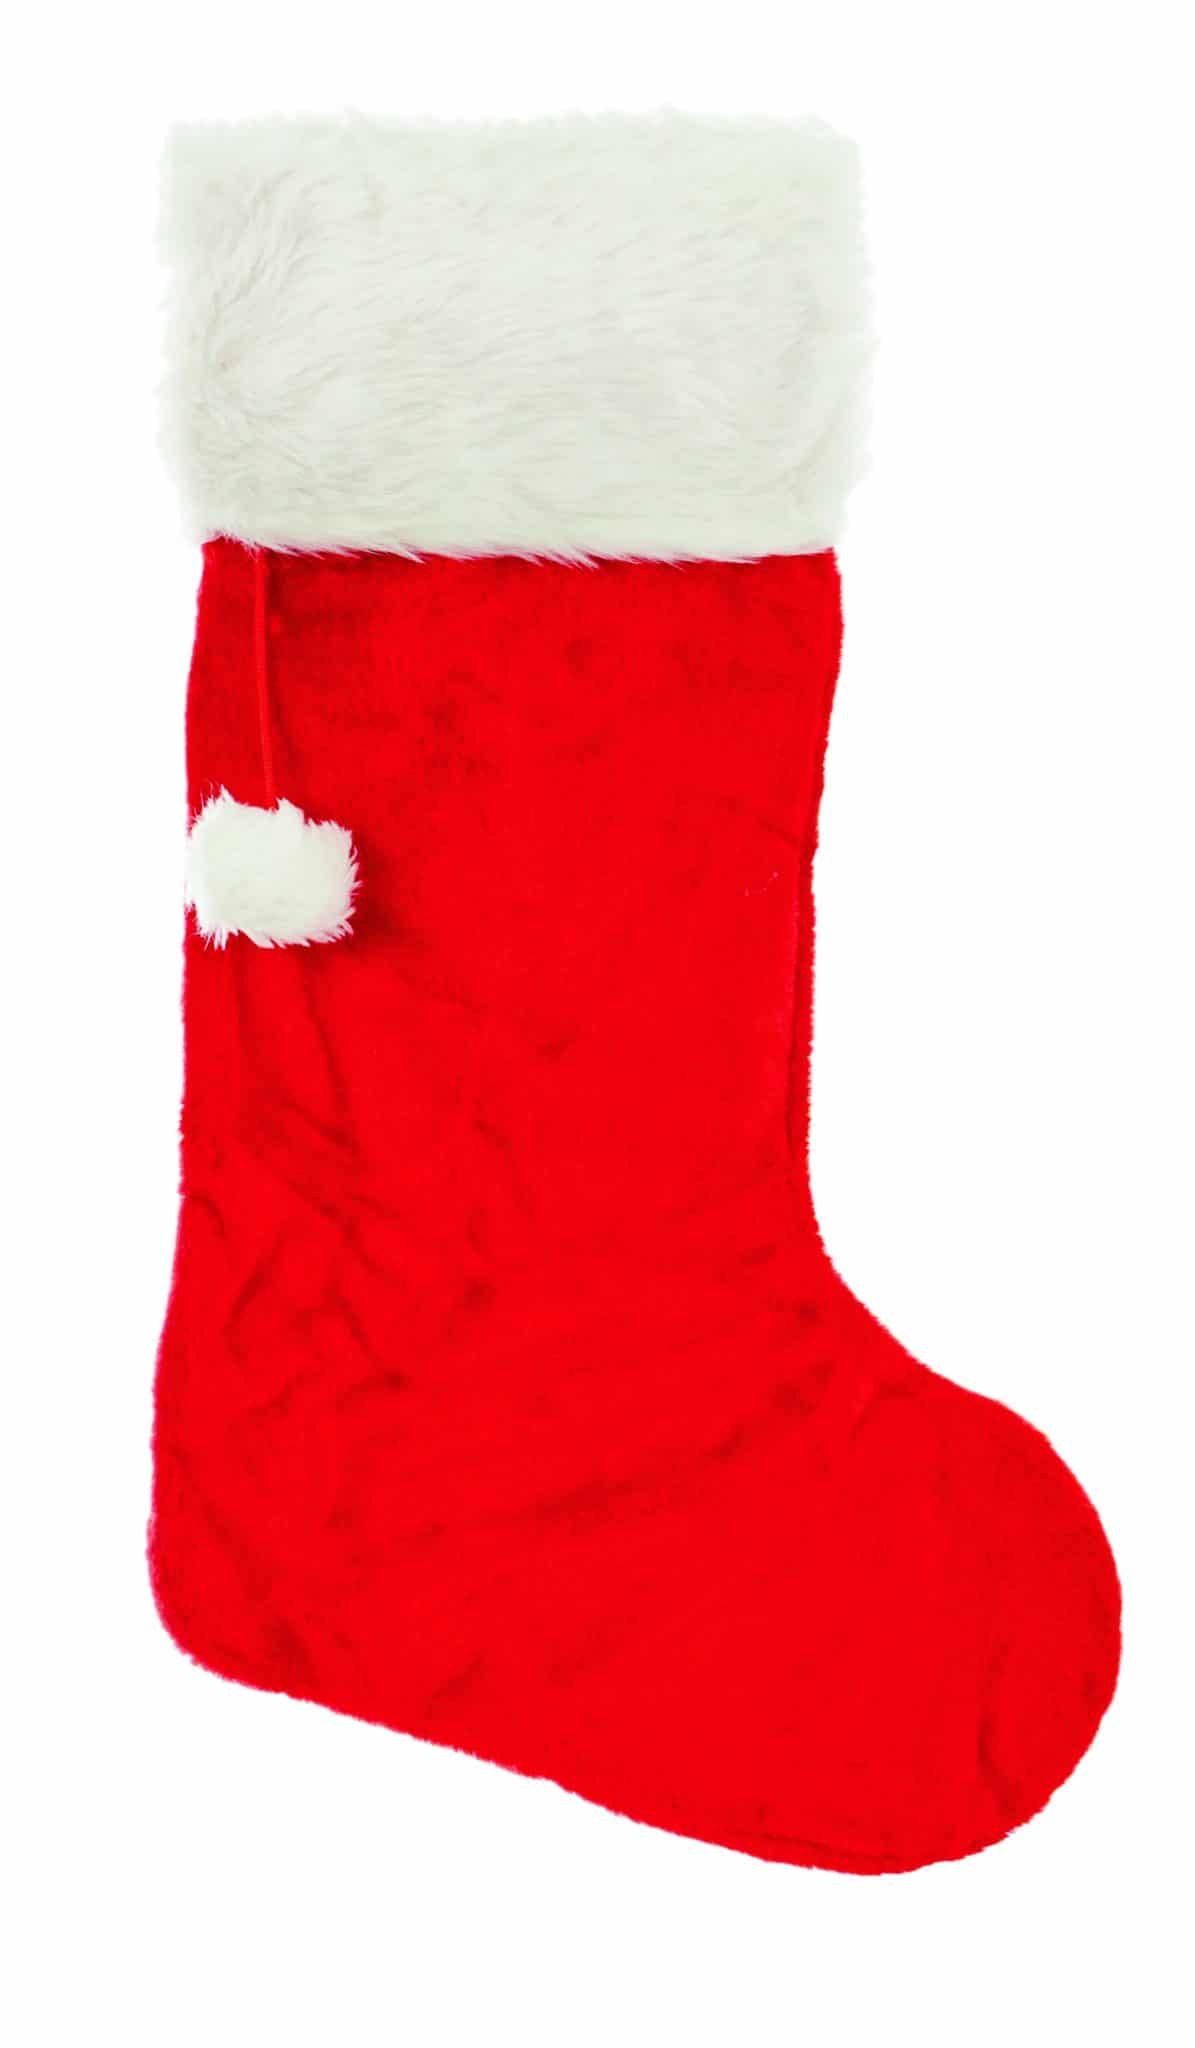 Red Christmas Stocking.Classic Red Christmas Stocking